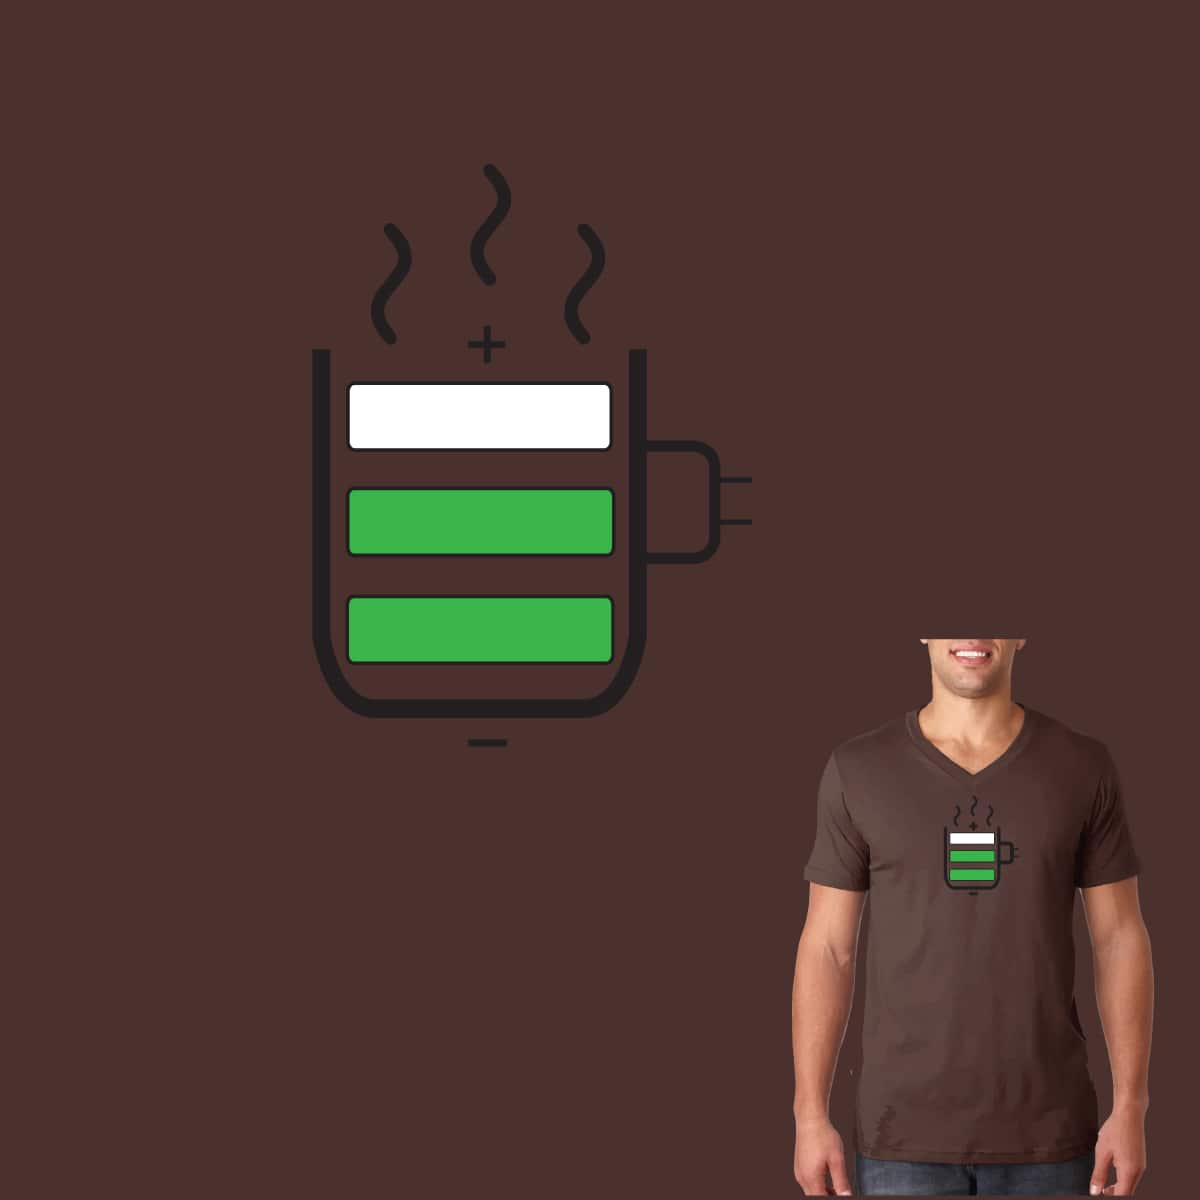 ReCharge by aamirp on Threadless